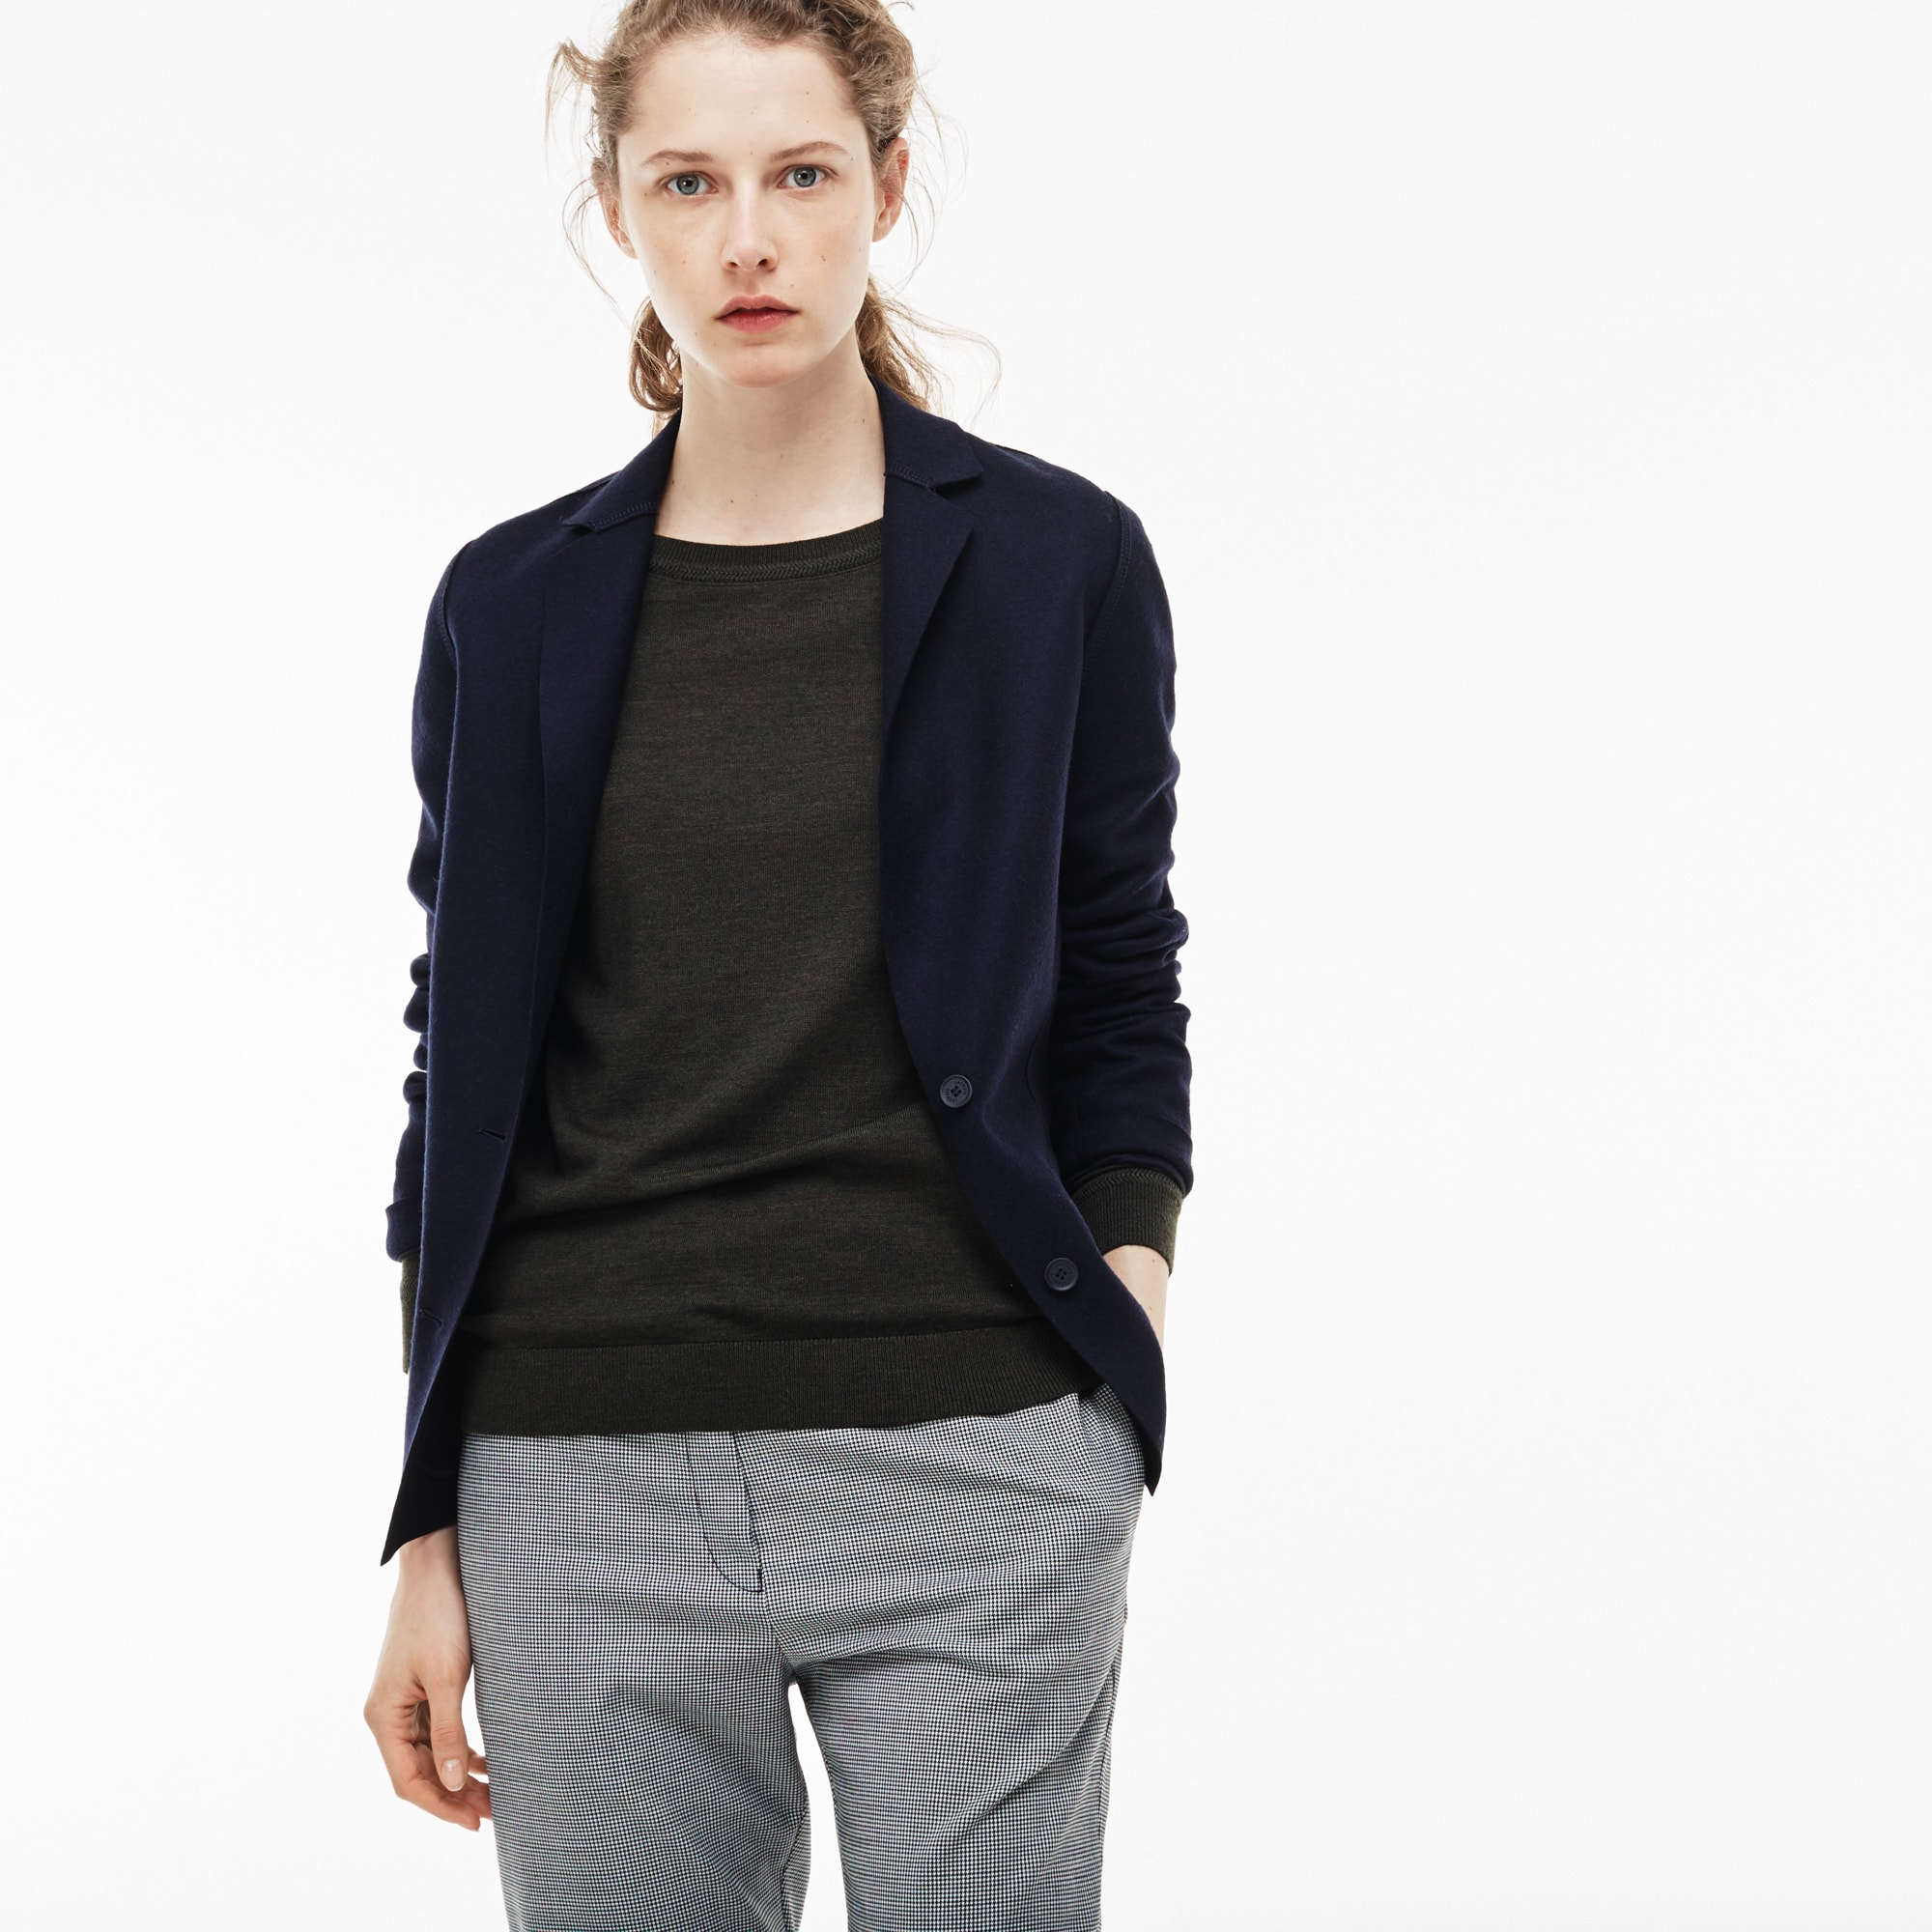 Women'S Buttoned Overstitched Wool Jacket in Navy Chine from Lacoste